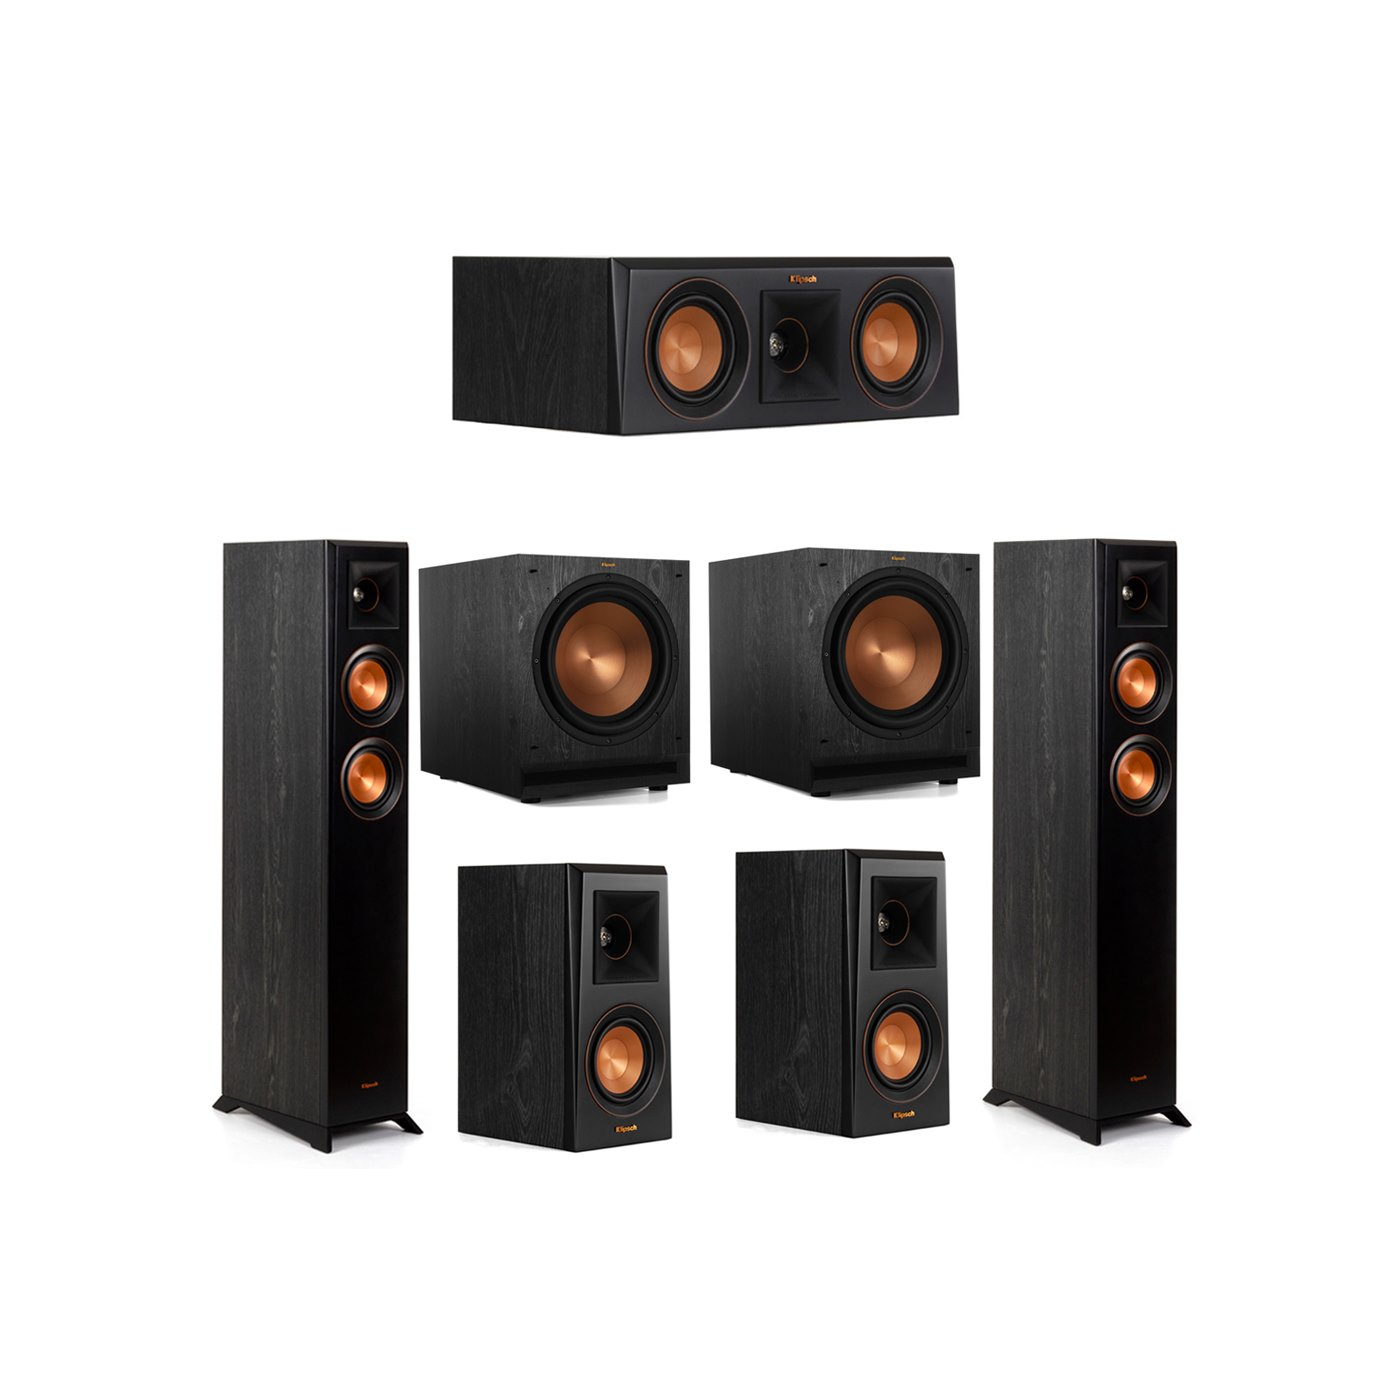 Klipsch 5.2 System with 2 RP-4000F Floorstanding Speakers, 1 Klipsch RP-400C Center Speaker, 2 Klipsch RP-400M Surround Speakers, 2 Klipsch SPL-120 Subwoofers